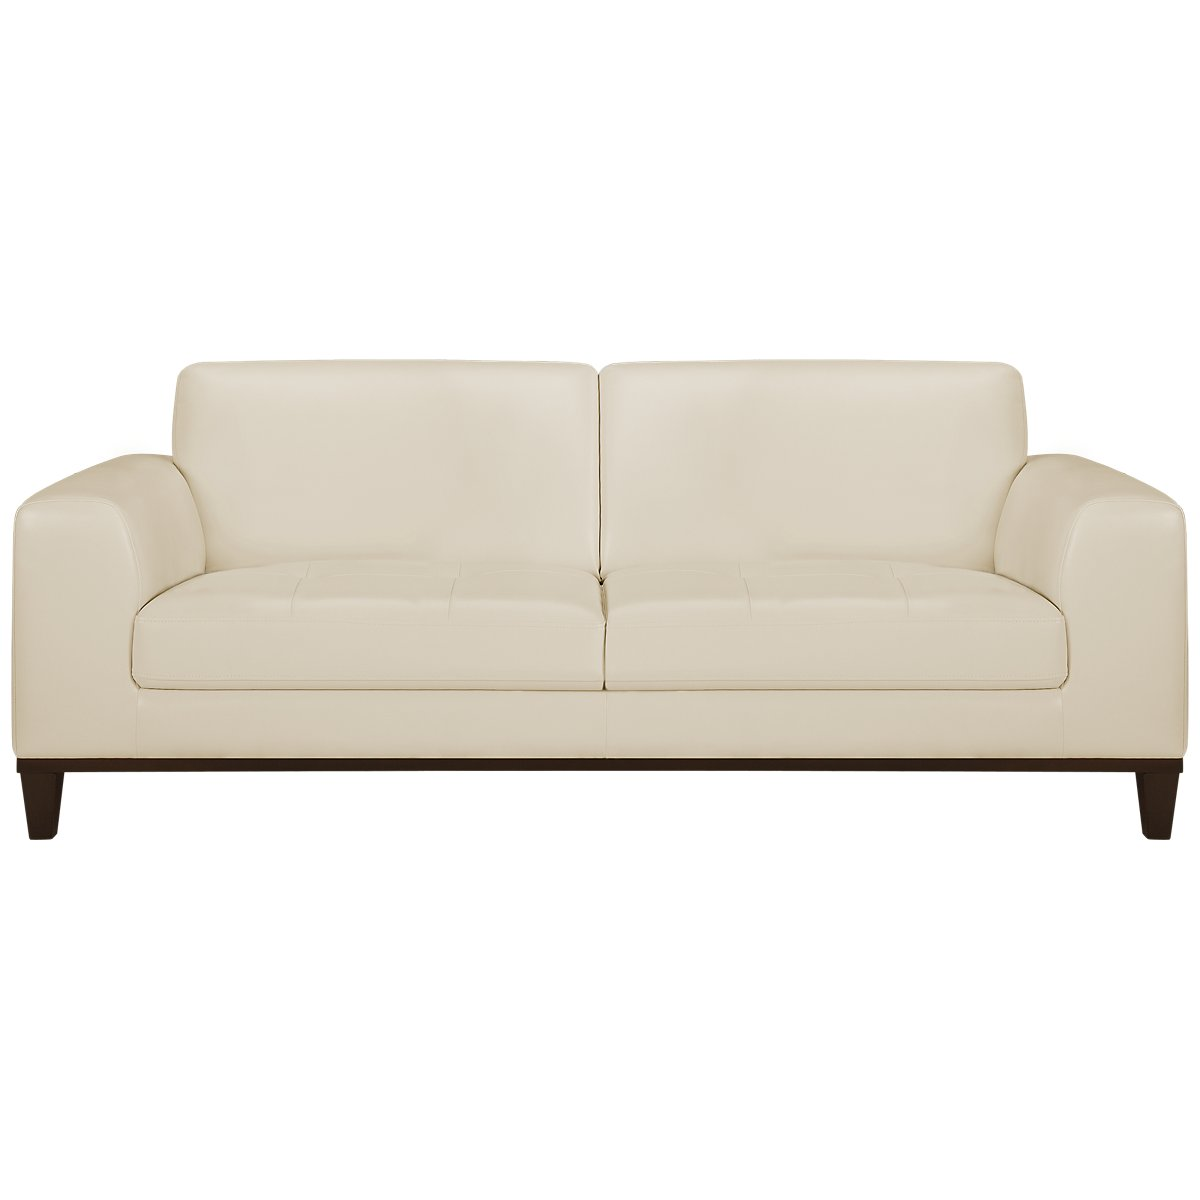 Piper Light Beige Bonded Leather Sofa